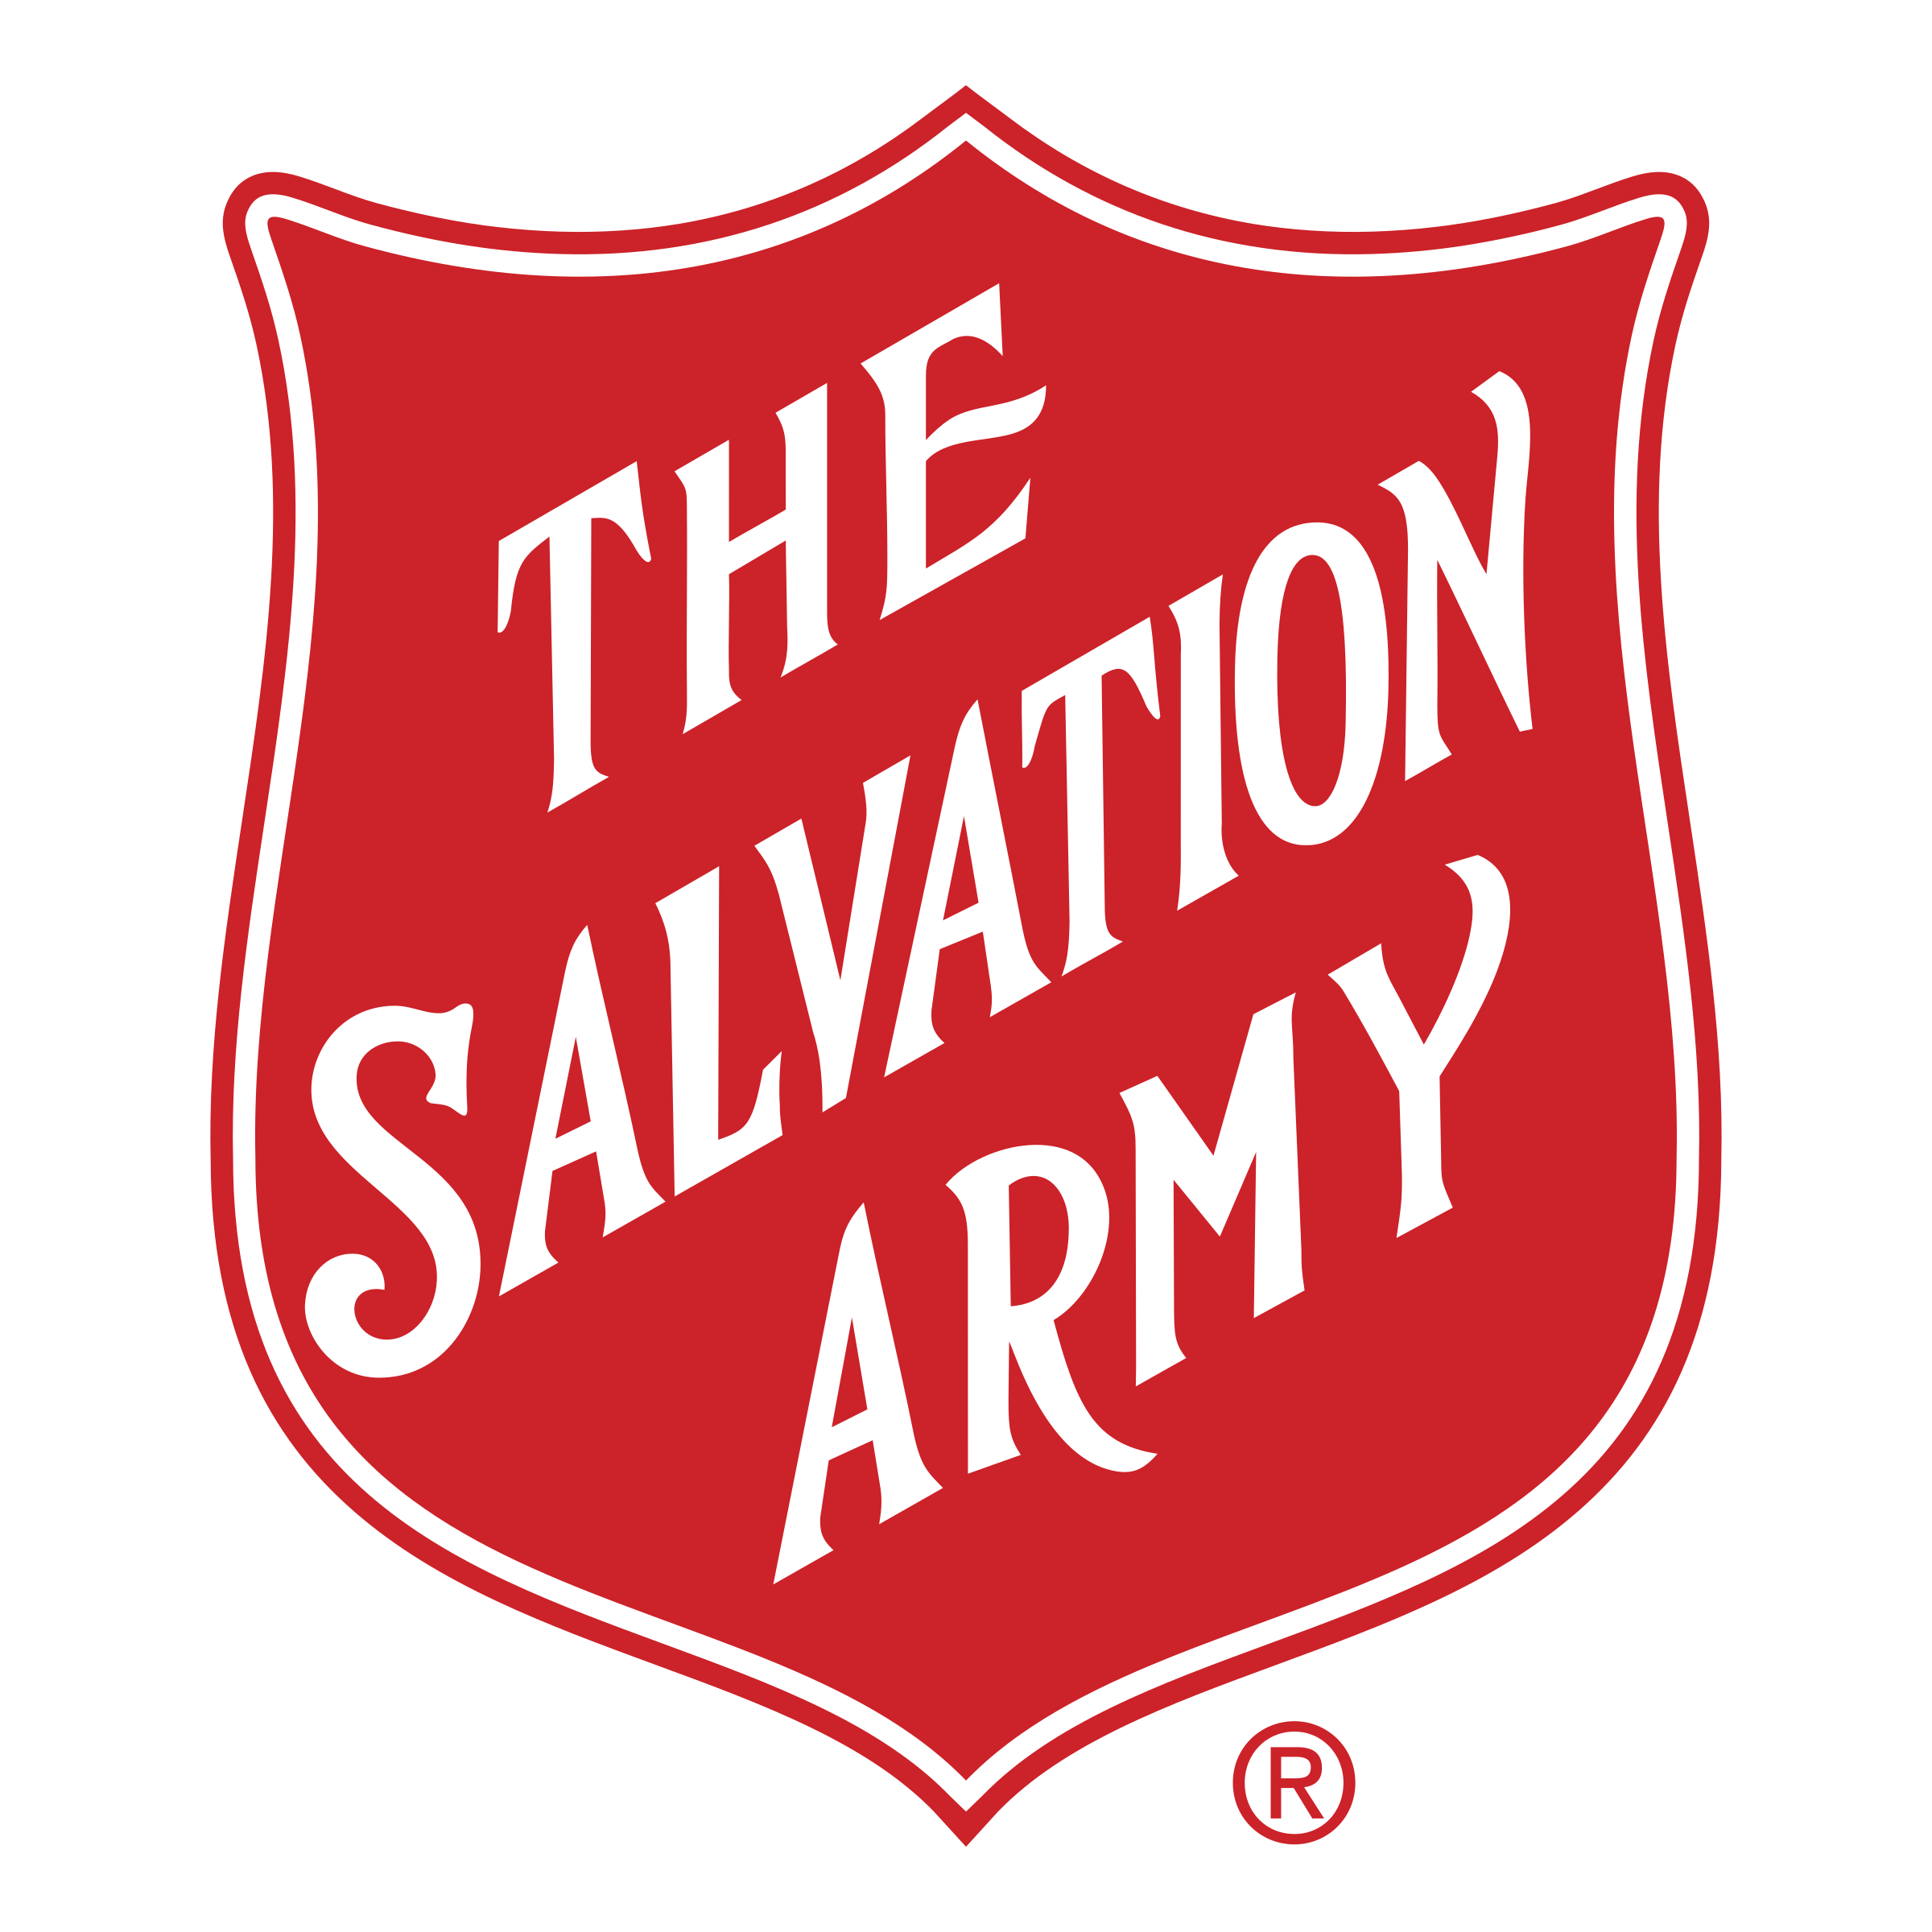 the-salvation-army-1-logo-png-transparent.png